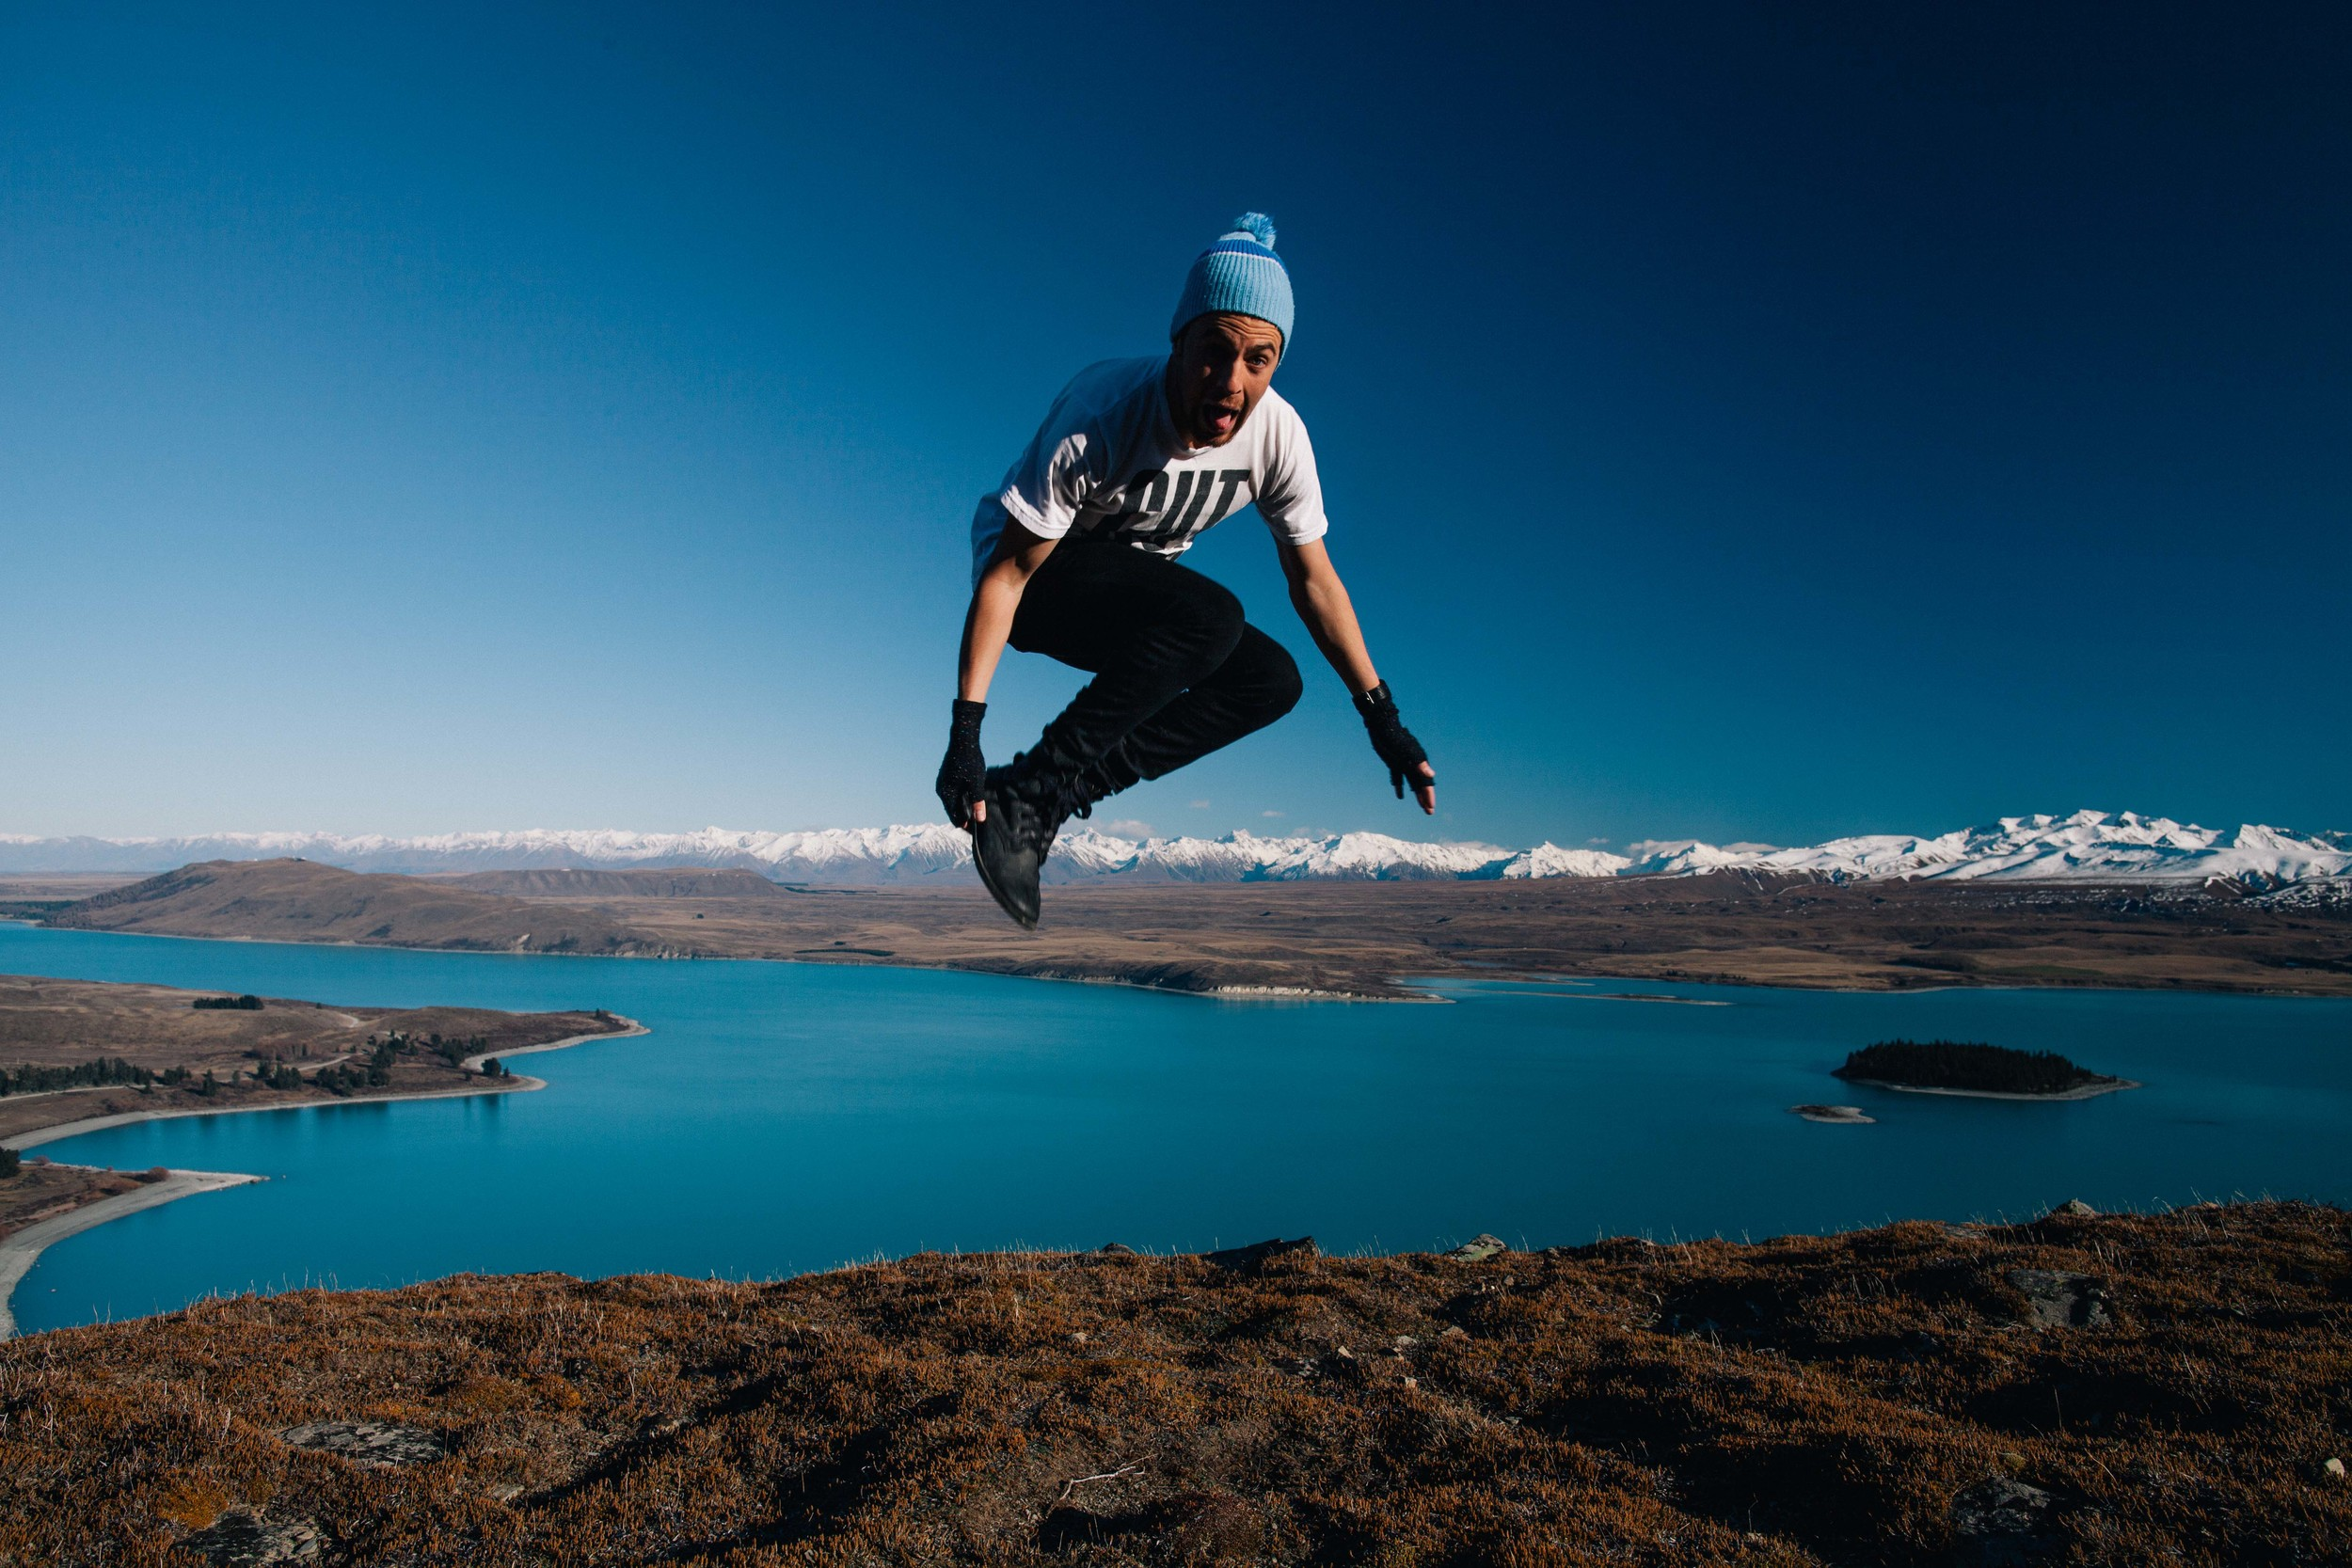 You'd jump for joy too if you'd just finished completing your website.